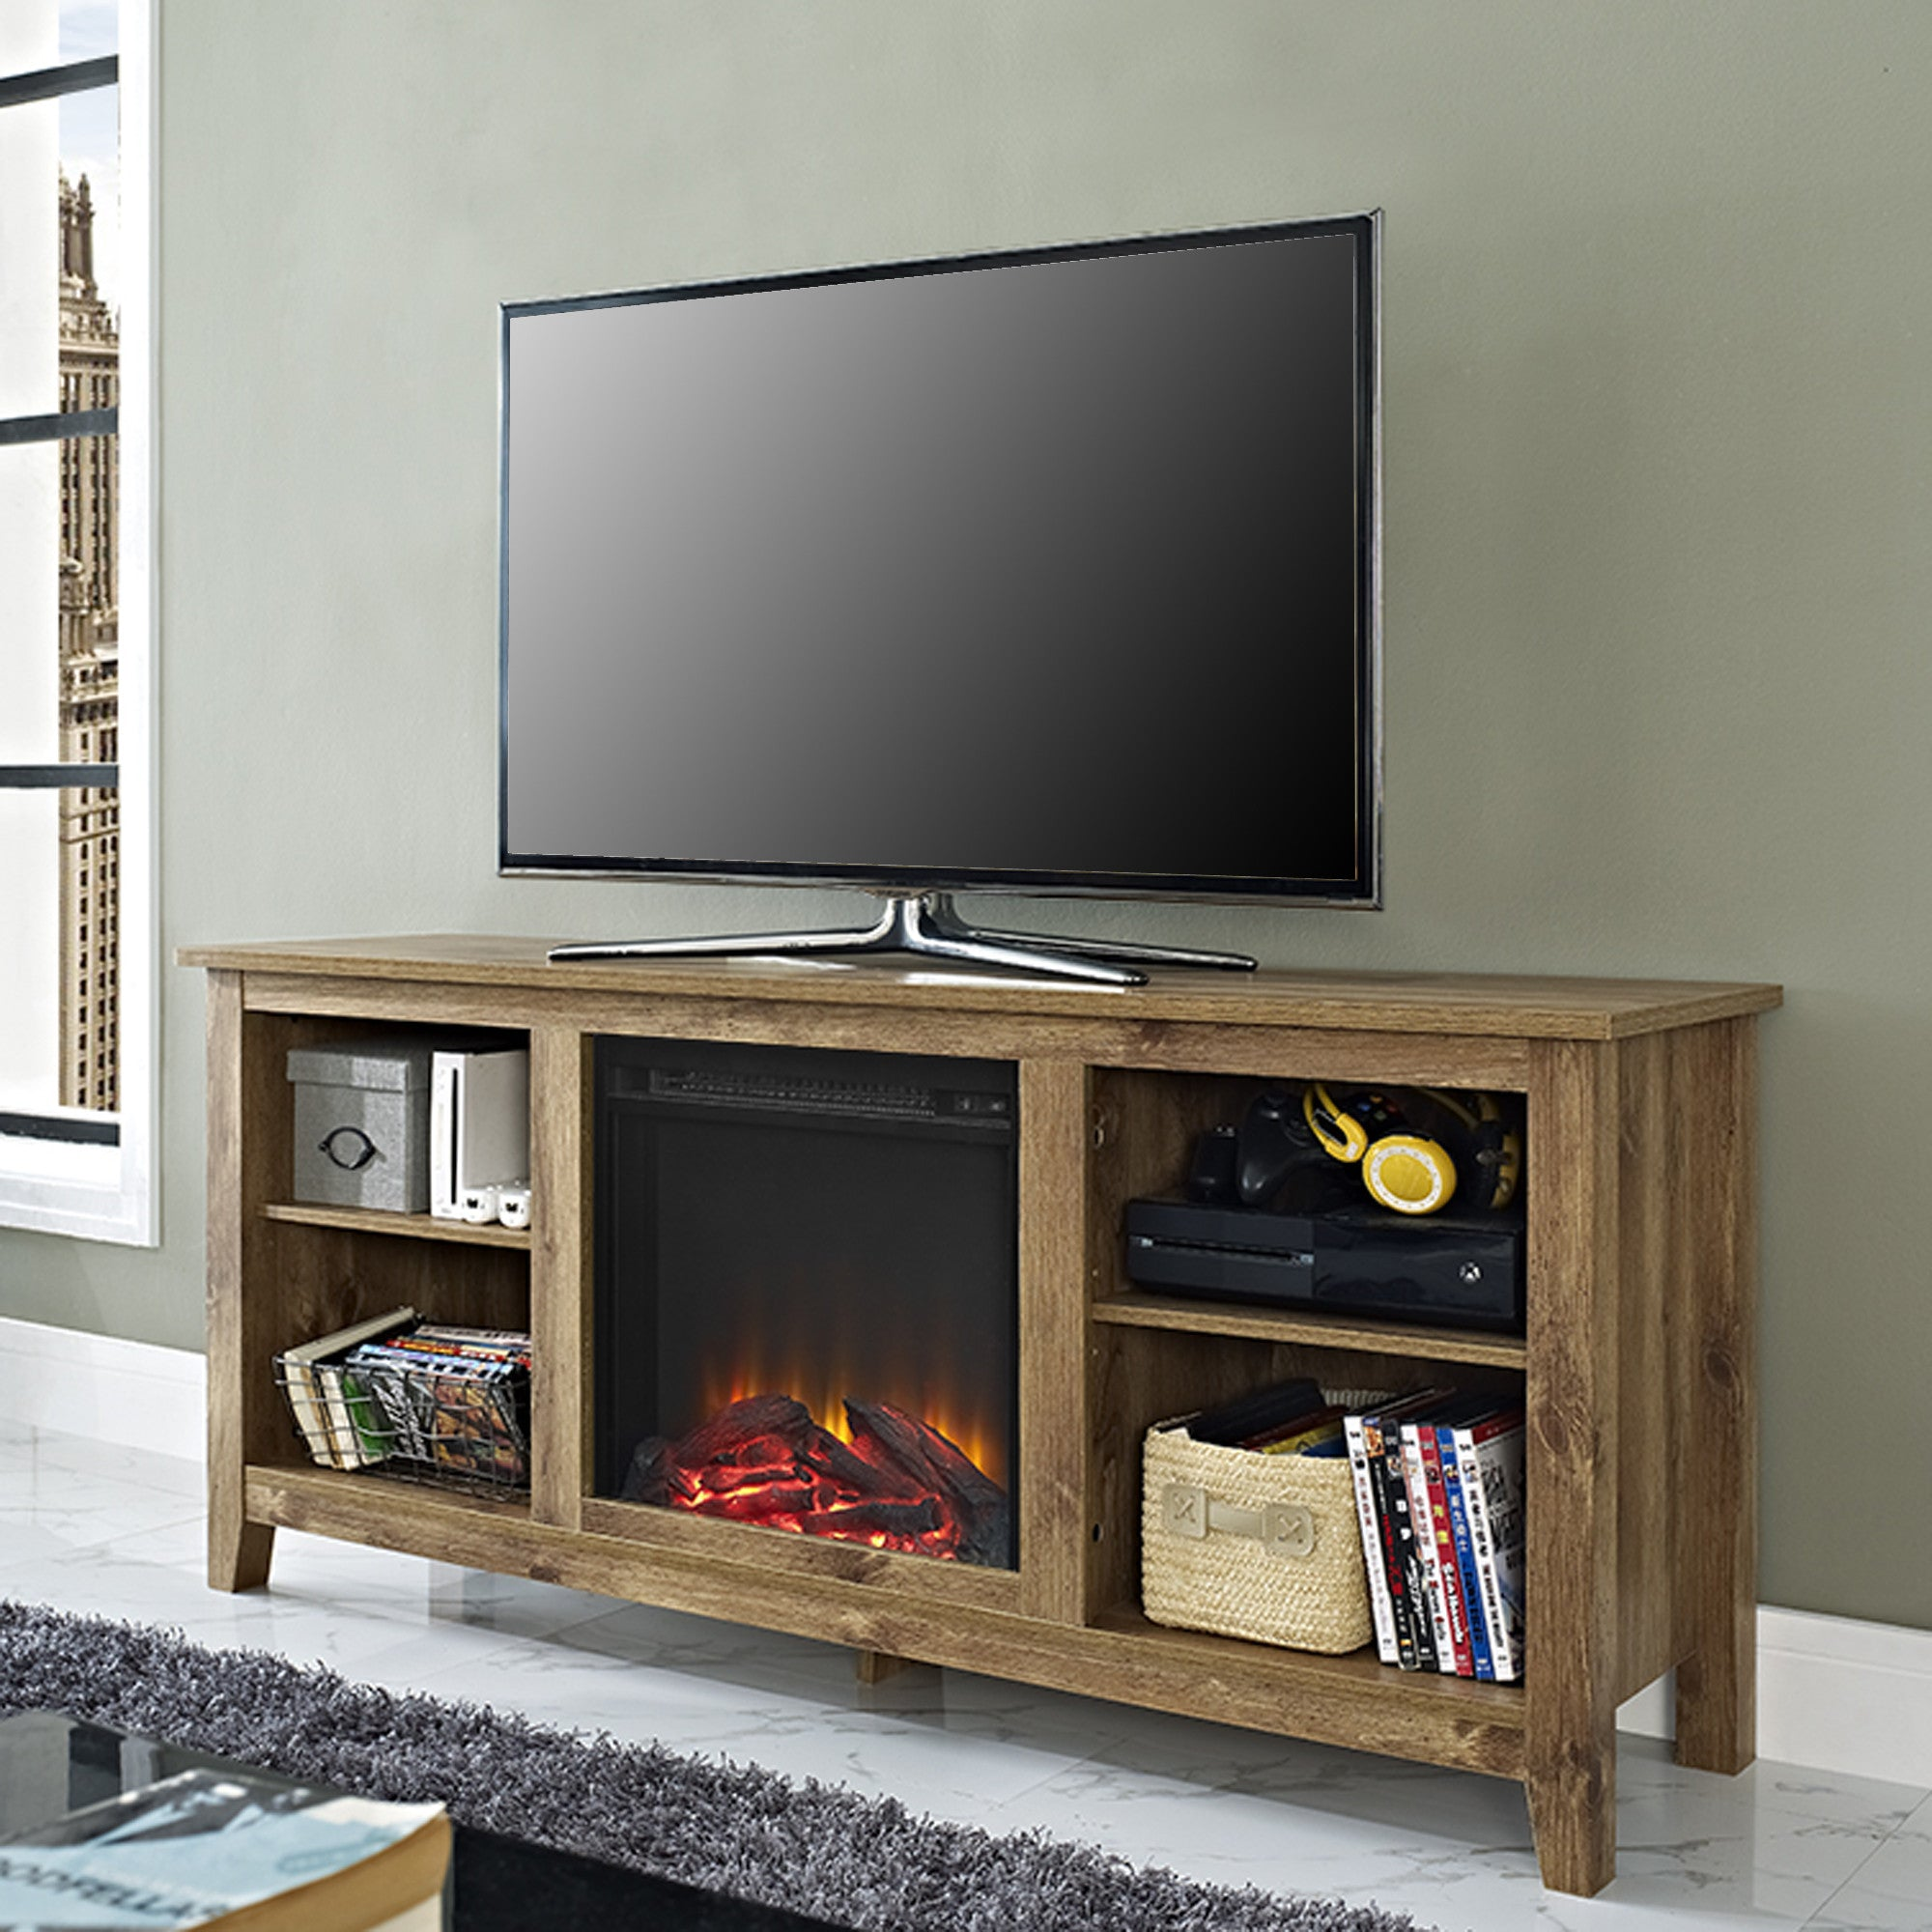 This elegant open concept TV stand comes with an integrated electric fireplace to add to your cozy ambiance and to keep you warm while you watch TV.  The stand is made of high quality wood and finished in an elegant barnwood finish.  It is extremely sturd